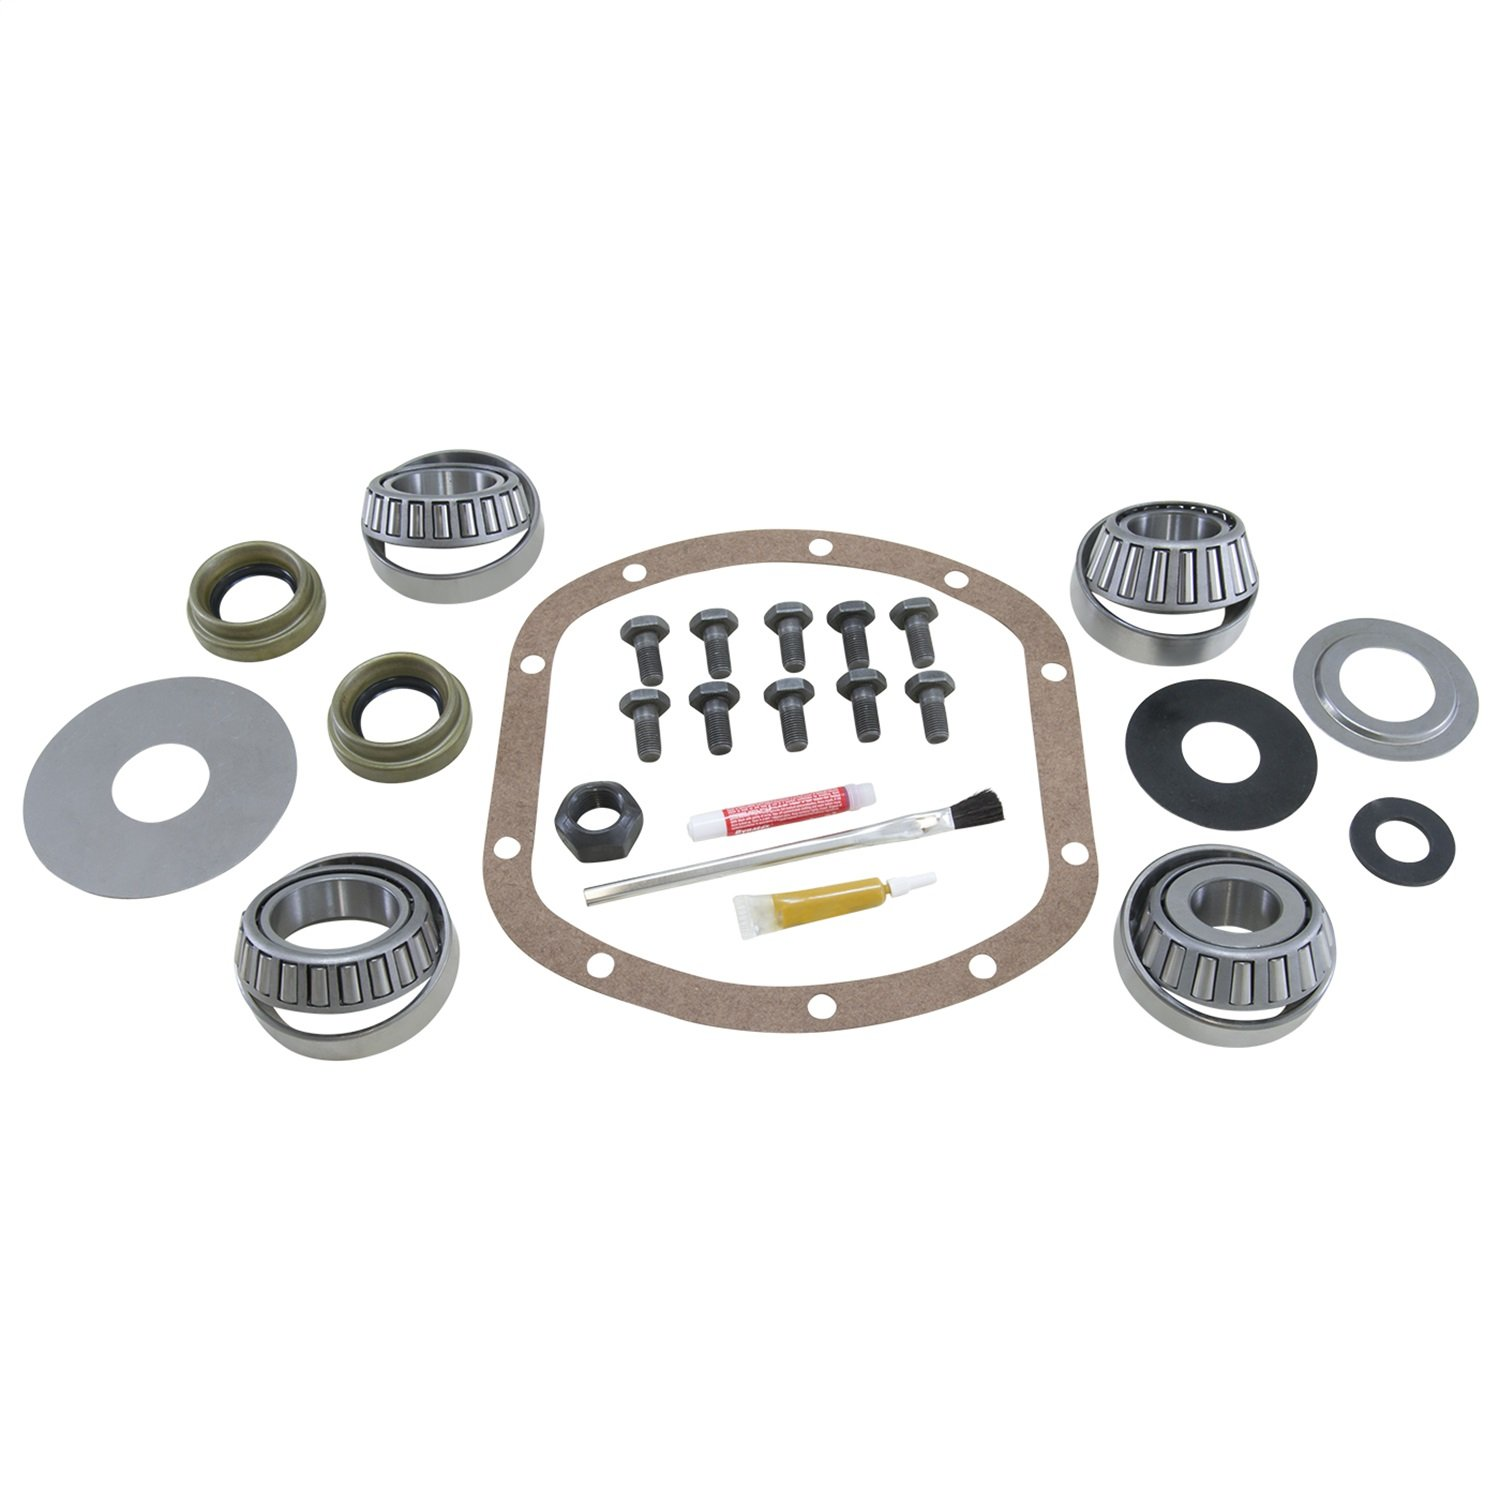 USA Standard Gear (ZK D30-F) Master Overhaul Kit for Dana 30 Front  Differential